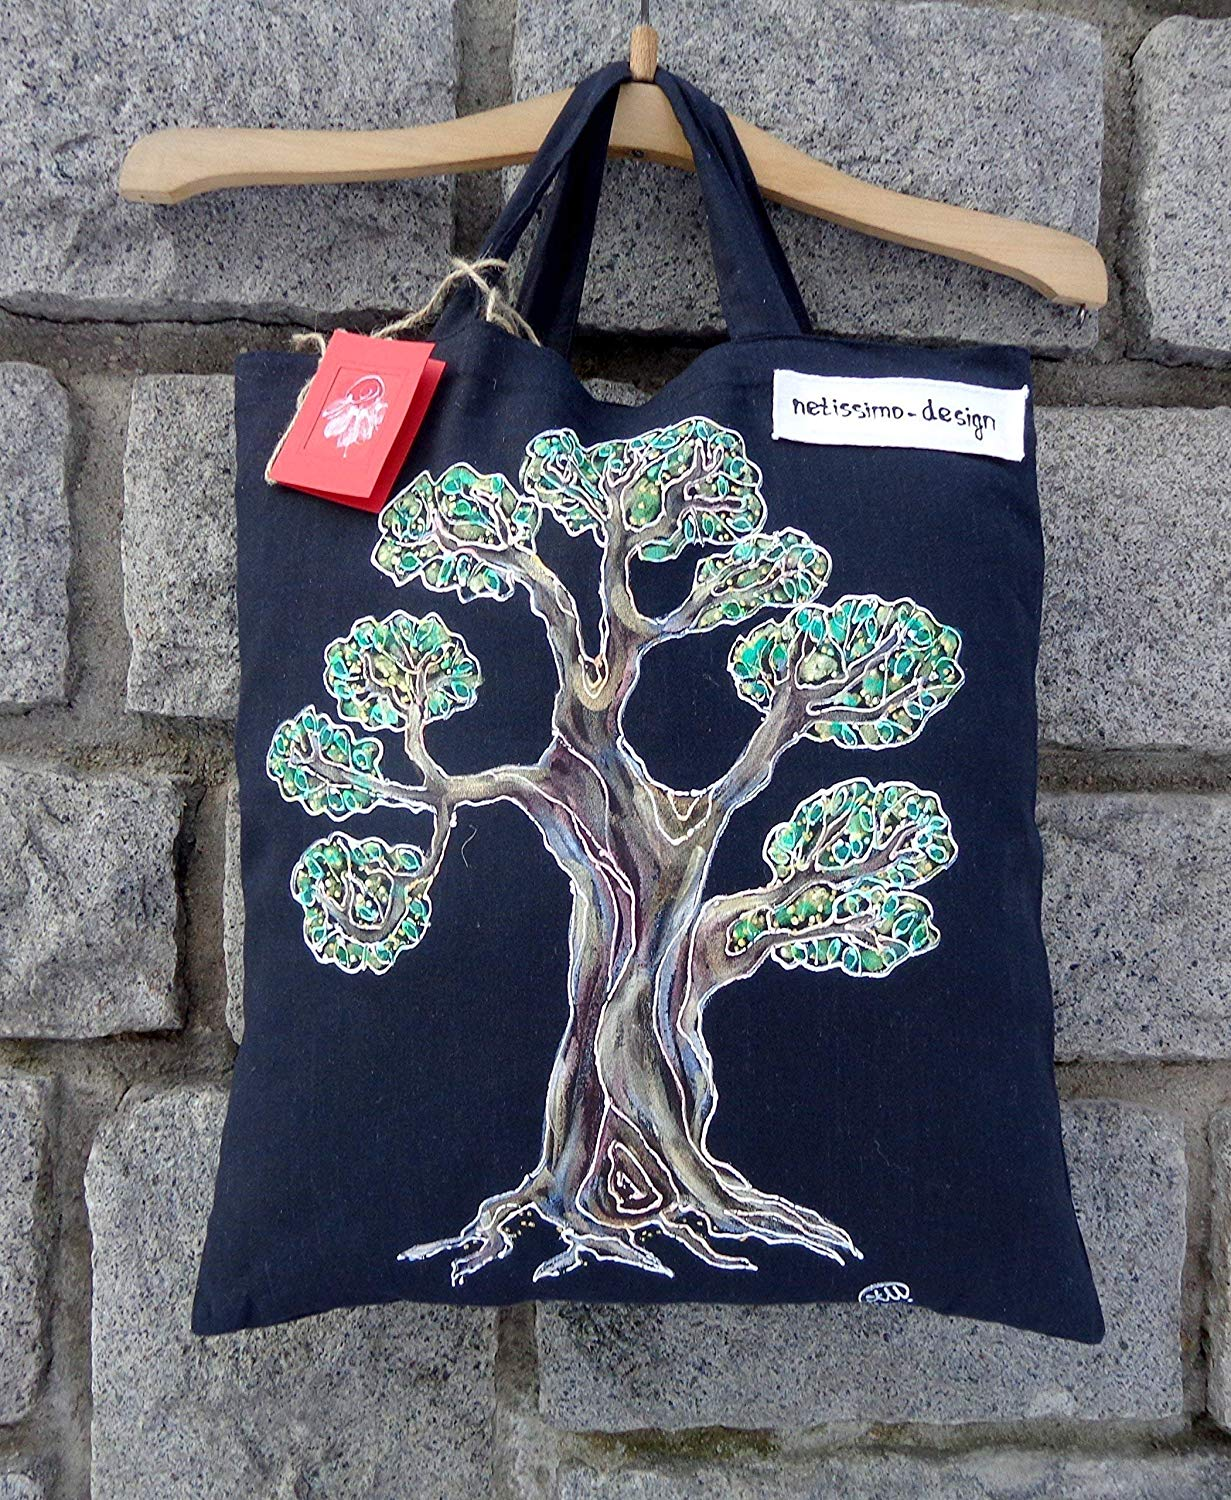 Sale!!!15% Off,Hand Painted Bonsai Tree Tote Bag,Shopping Bag,Japanese Bonsai Canvas Tote,Japanese Tote,Bonsai Artwork,Gift for Her,Cotton tote bag,Birthday gift Bag,Gift Bag